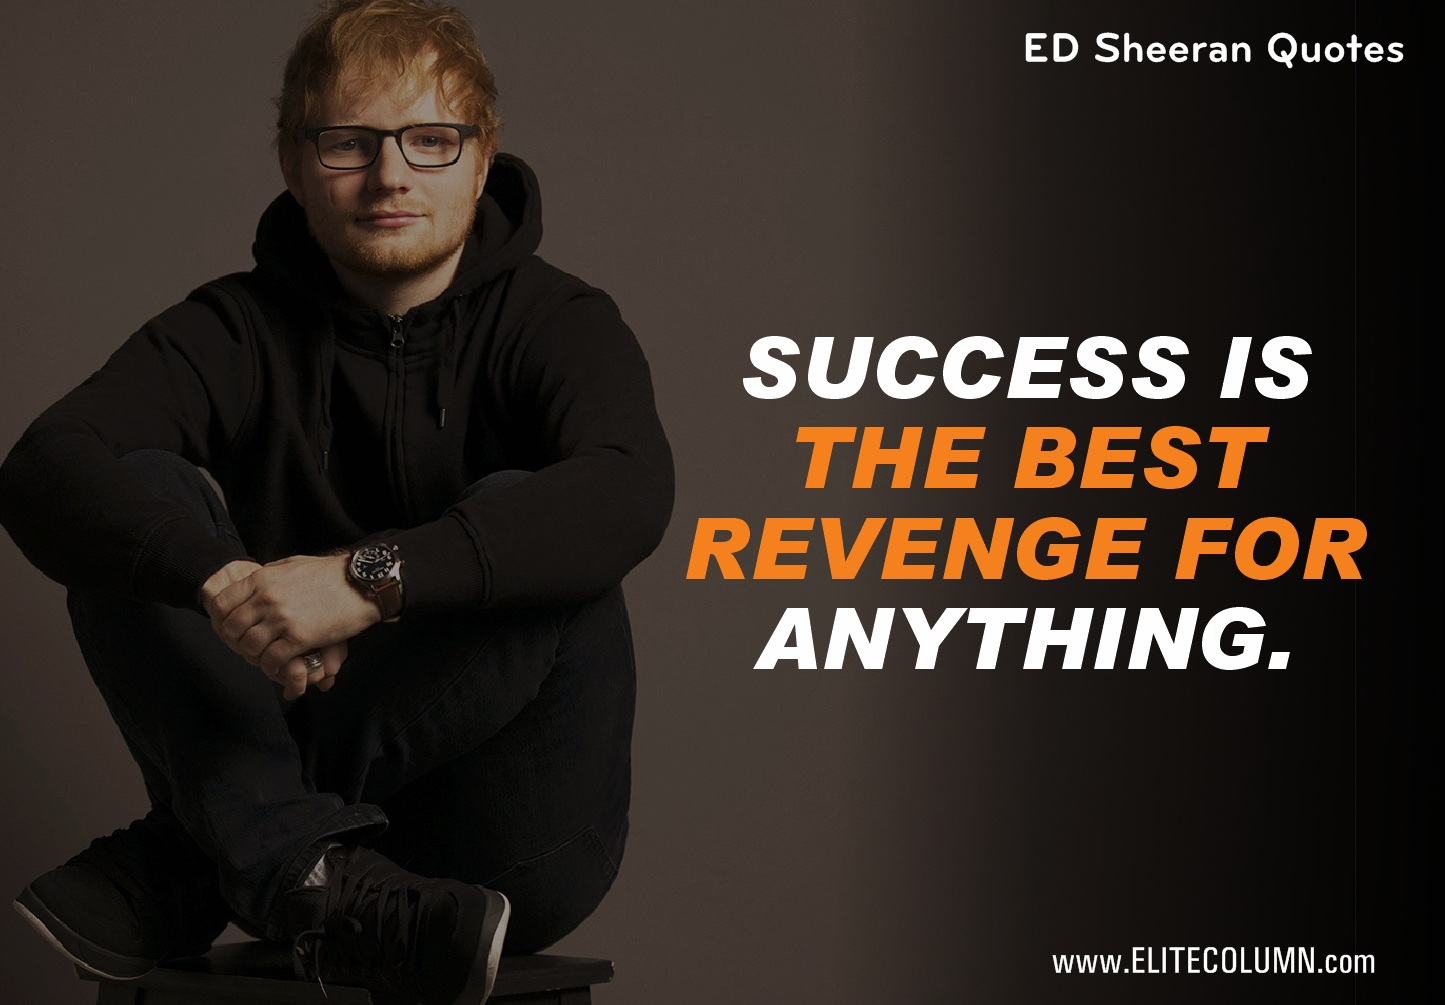 Ed Sheeran Quotes (1)